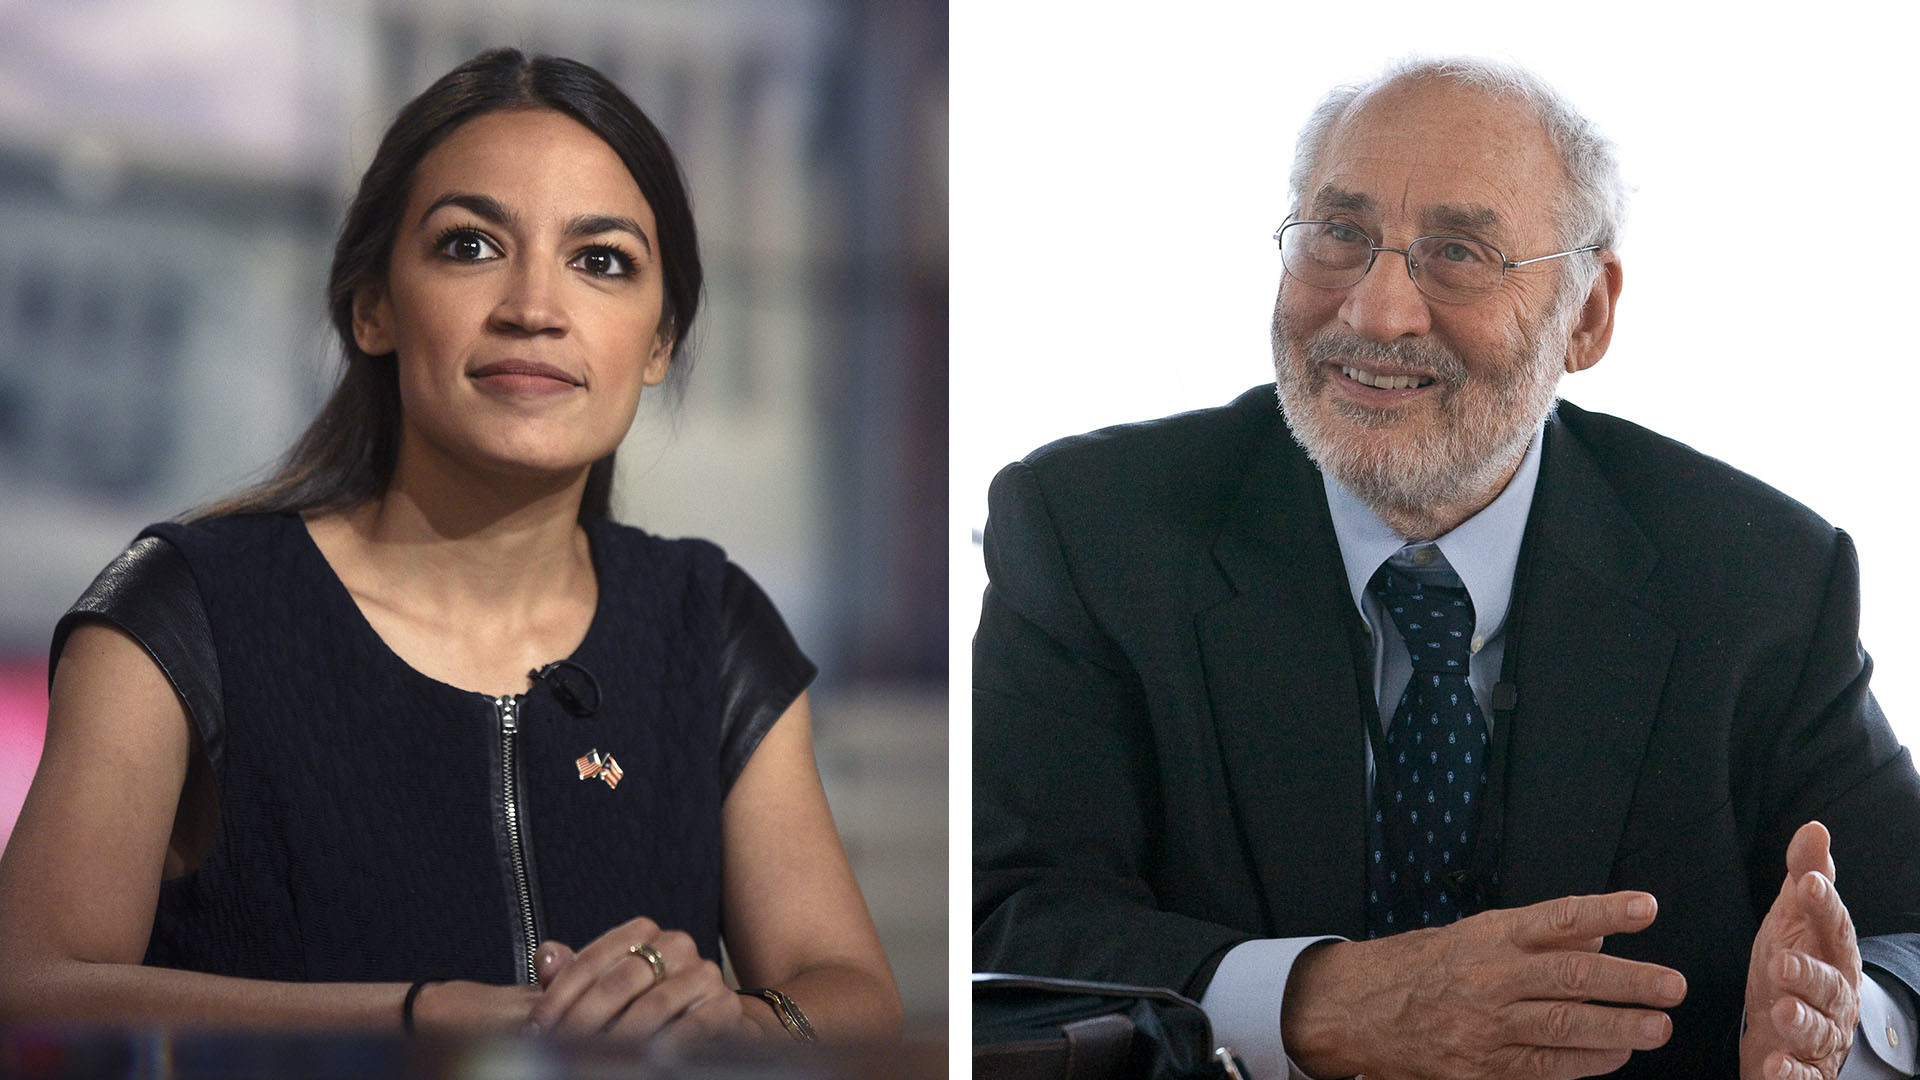 A Nobel Prize-winning economist and the second-most-famous democratic socialist in America sit down together